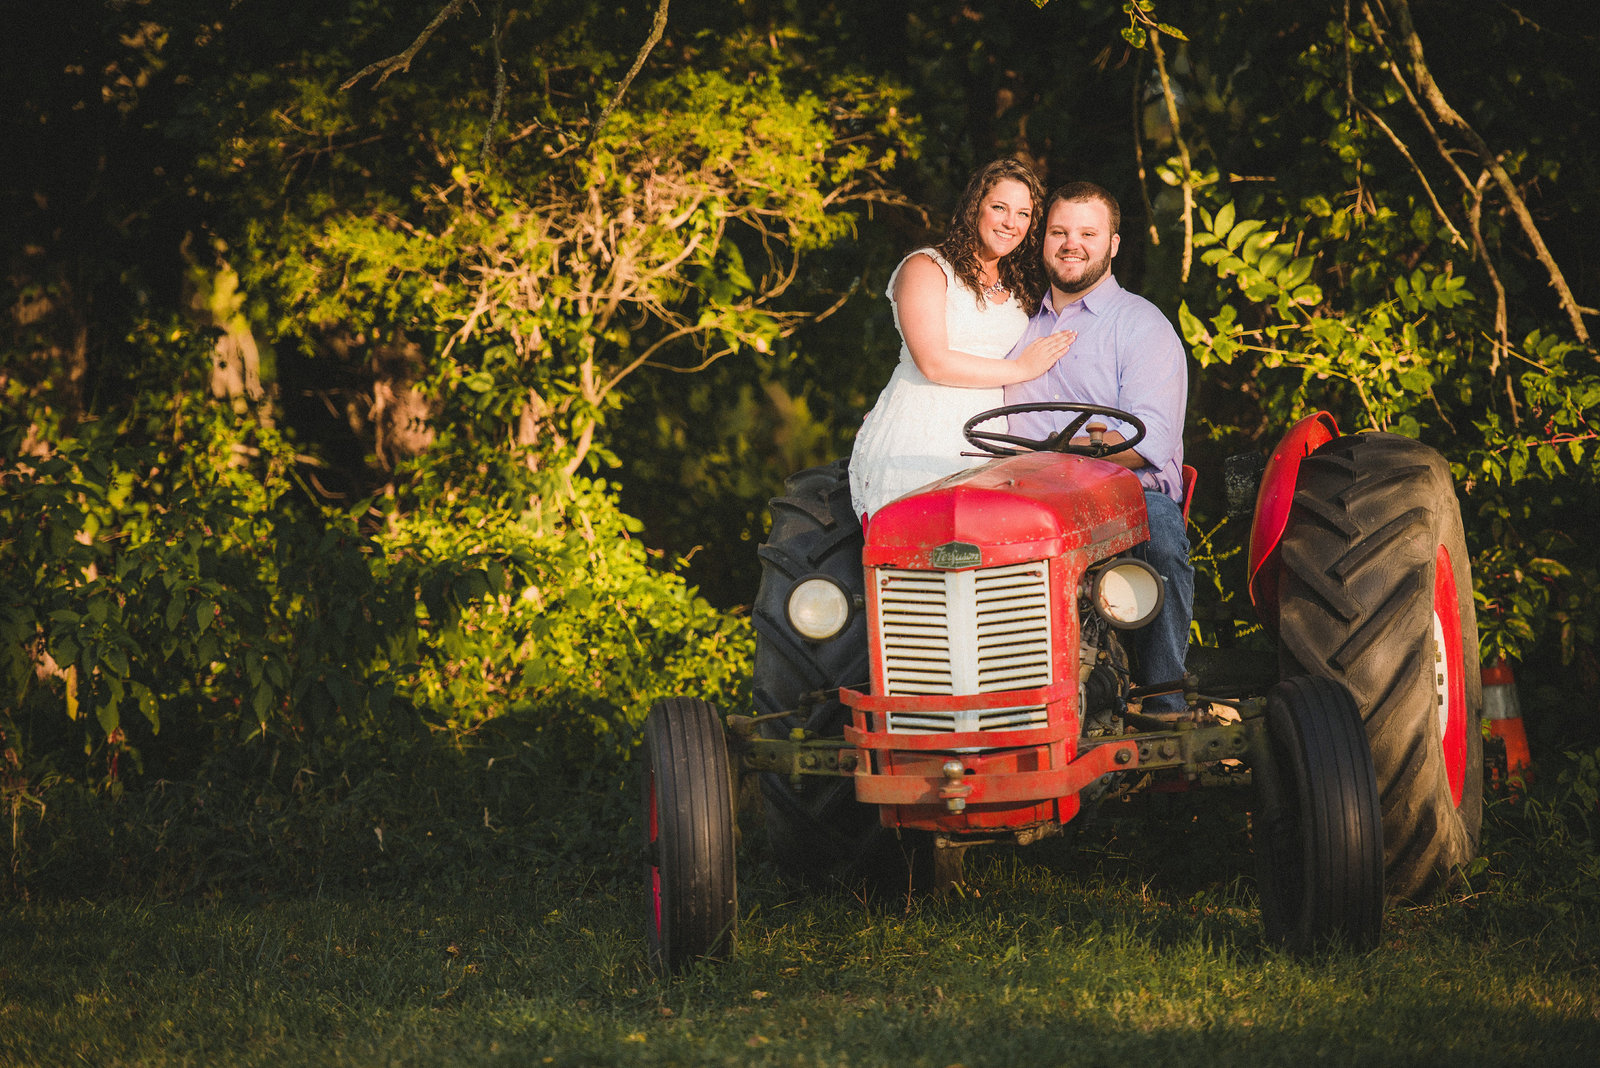 NJ_Rustic_Engagement_Photography067